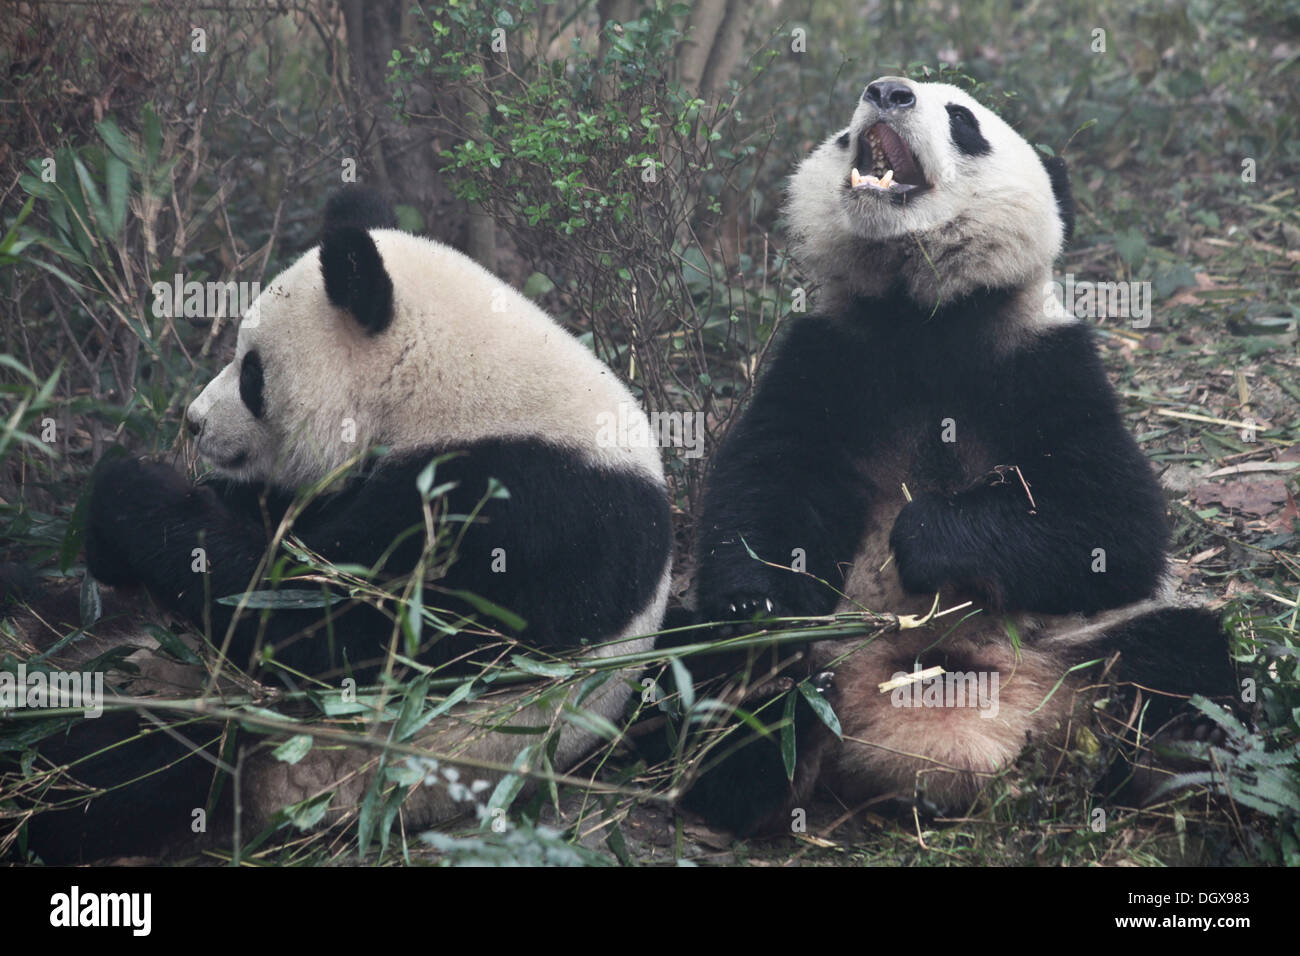 Giant Pandas (Ailuropoda melanoleuca) at Chengdu Panda Breeding and Research Center, Chengdu, China, People's Republic of China - Stock Image